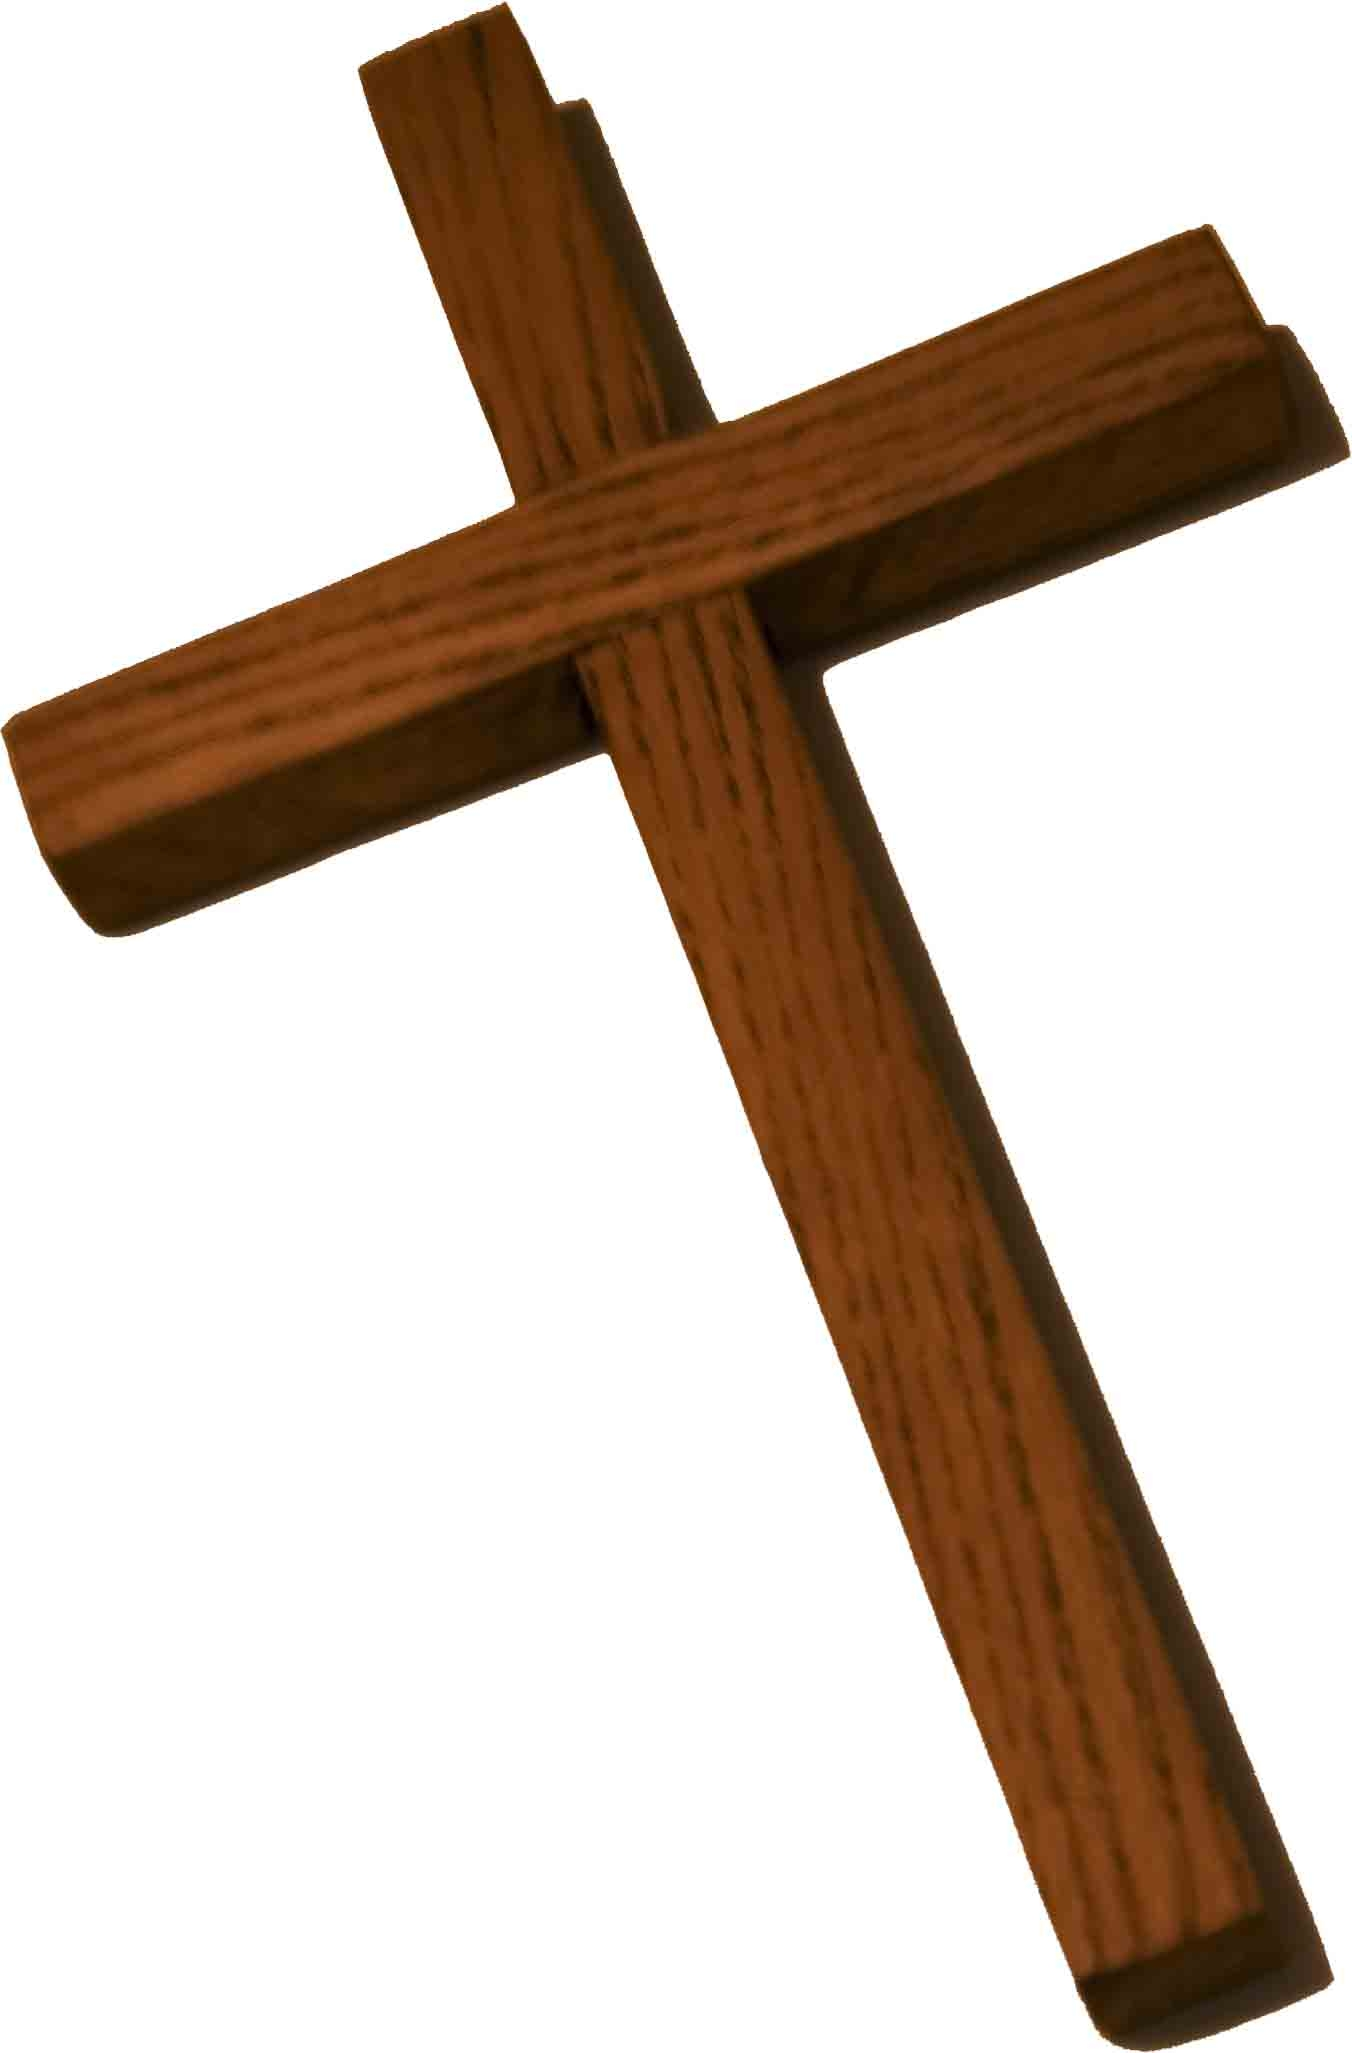 Crucifix clipart brown. Free cross cliparts download